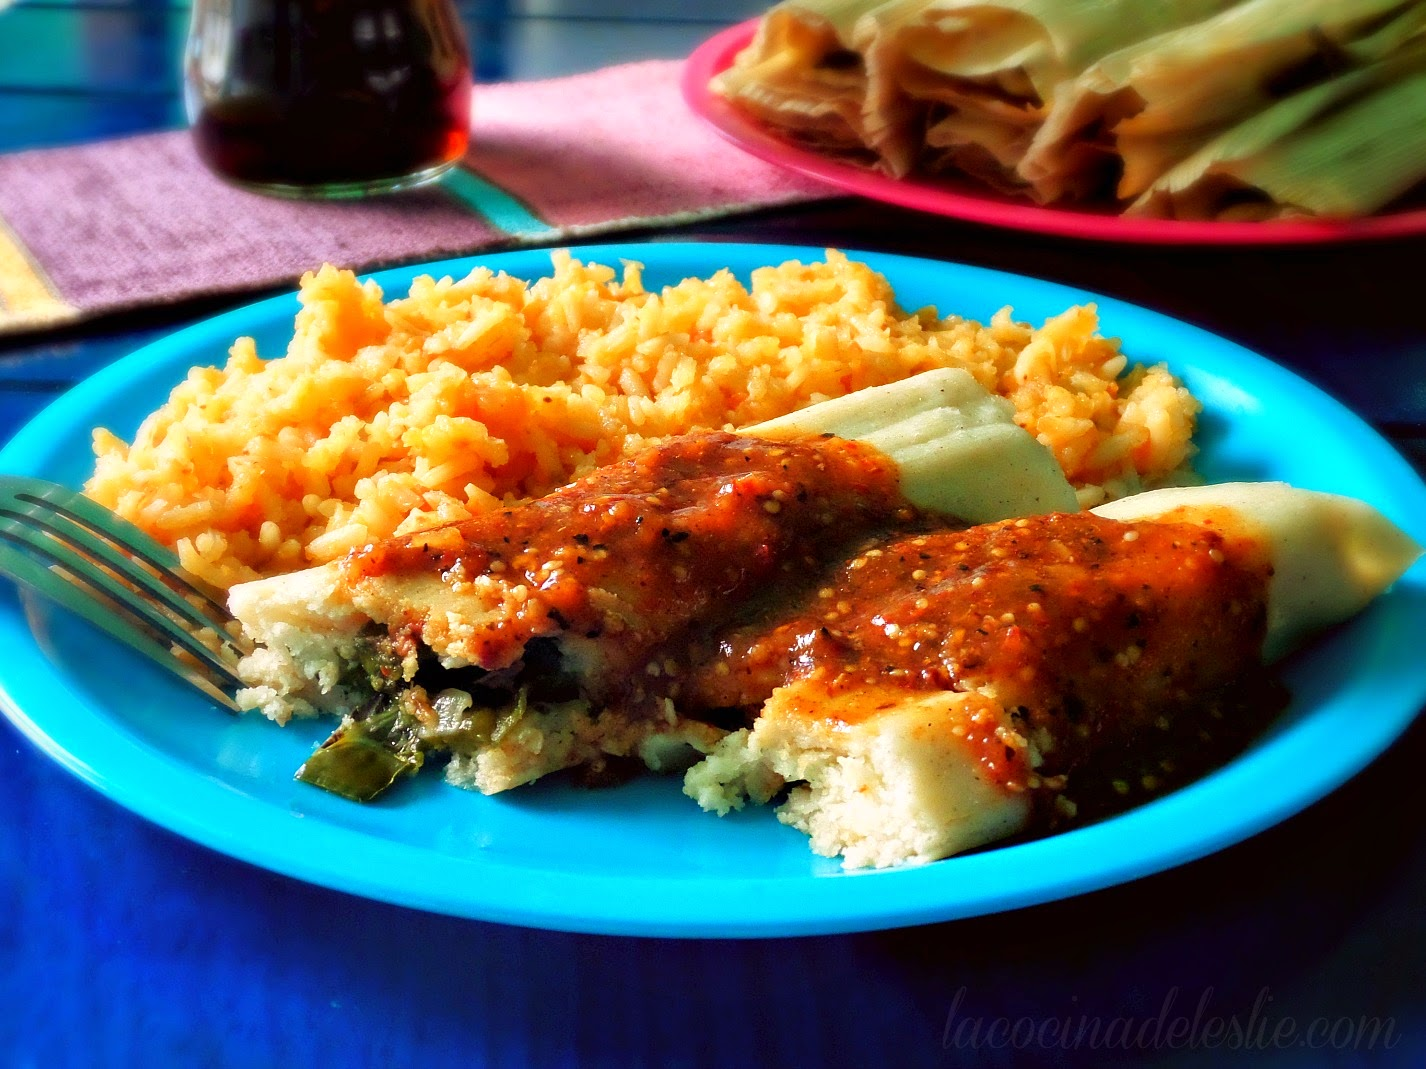 How to make Tamales de Rajas from scratch - lacocinadeleslie.com